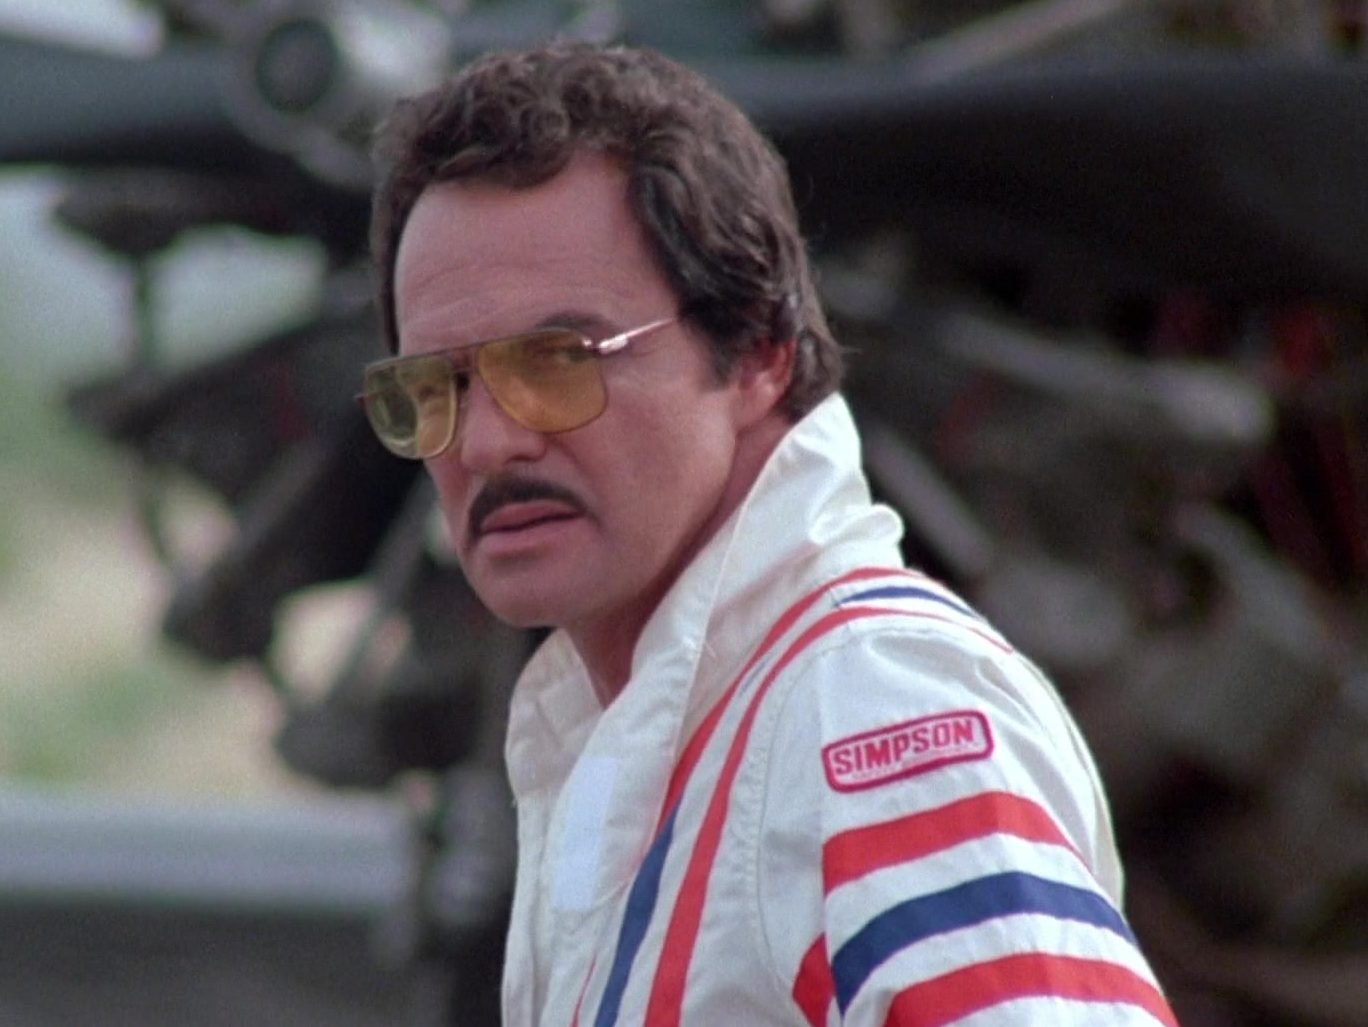 Simpson Racing Suit of Burt Reynolds as J.J. McClure in Cannonball Run II 1 e1627036026381 20 Fun Facts You Didn't Know About The Cannonball Run Films